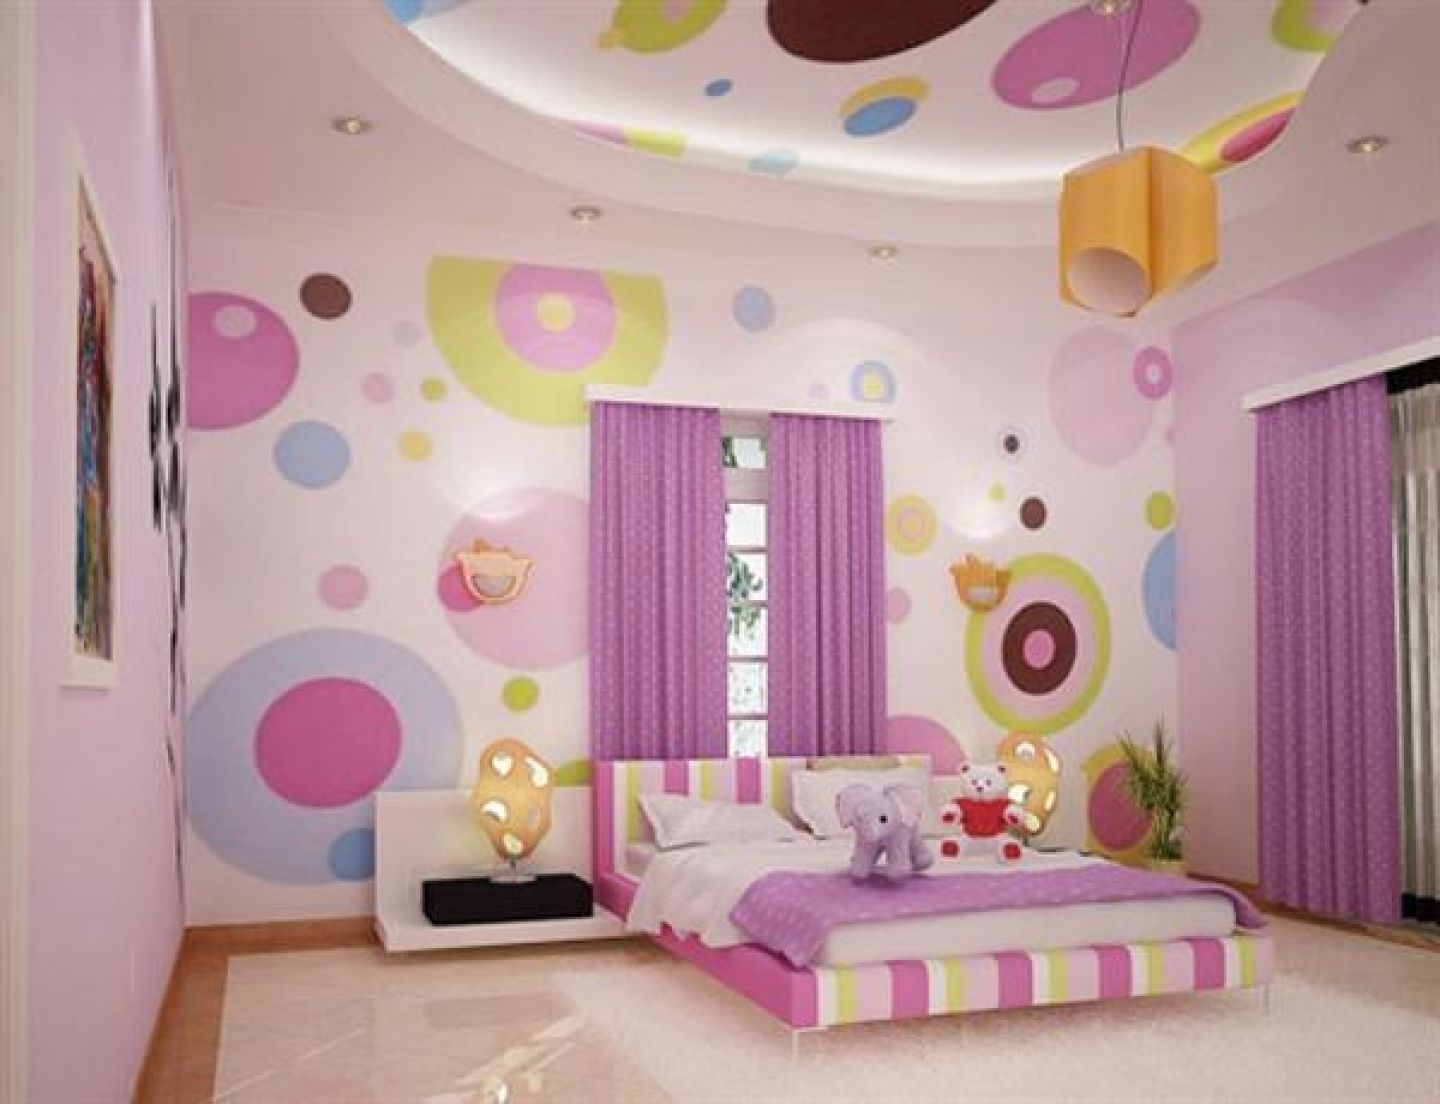 Girls Bedroom Paint Ideas Stripes cheerful teen bedroom paint idea for girls with colorful circles